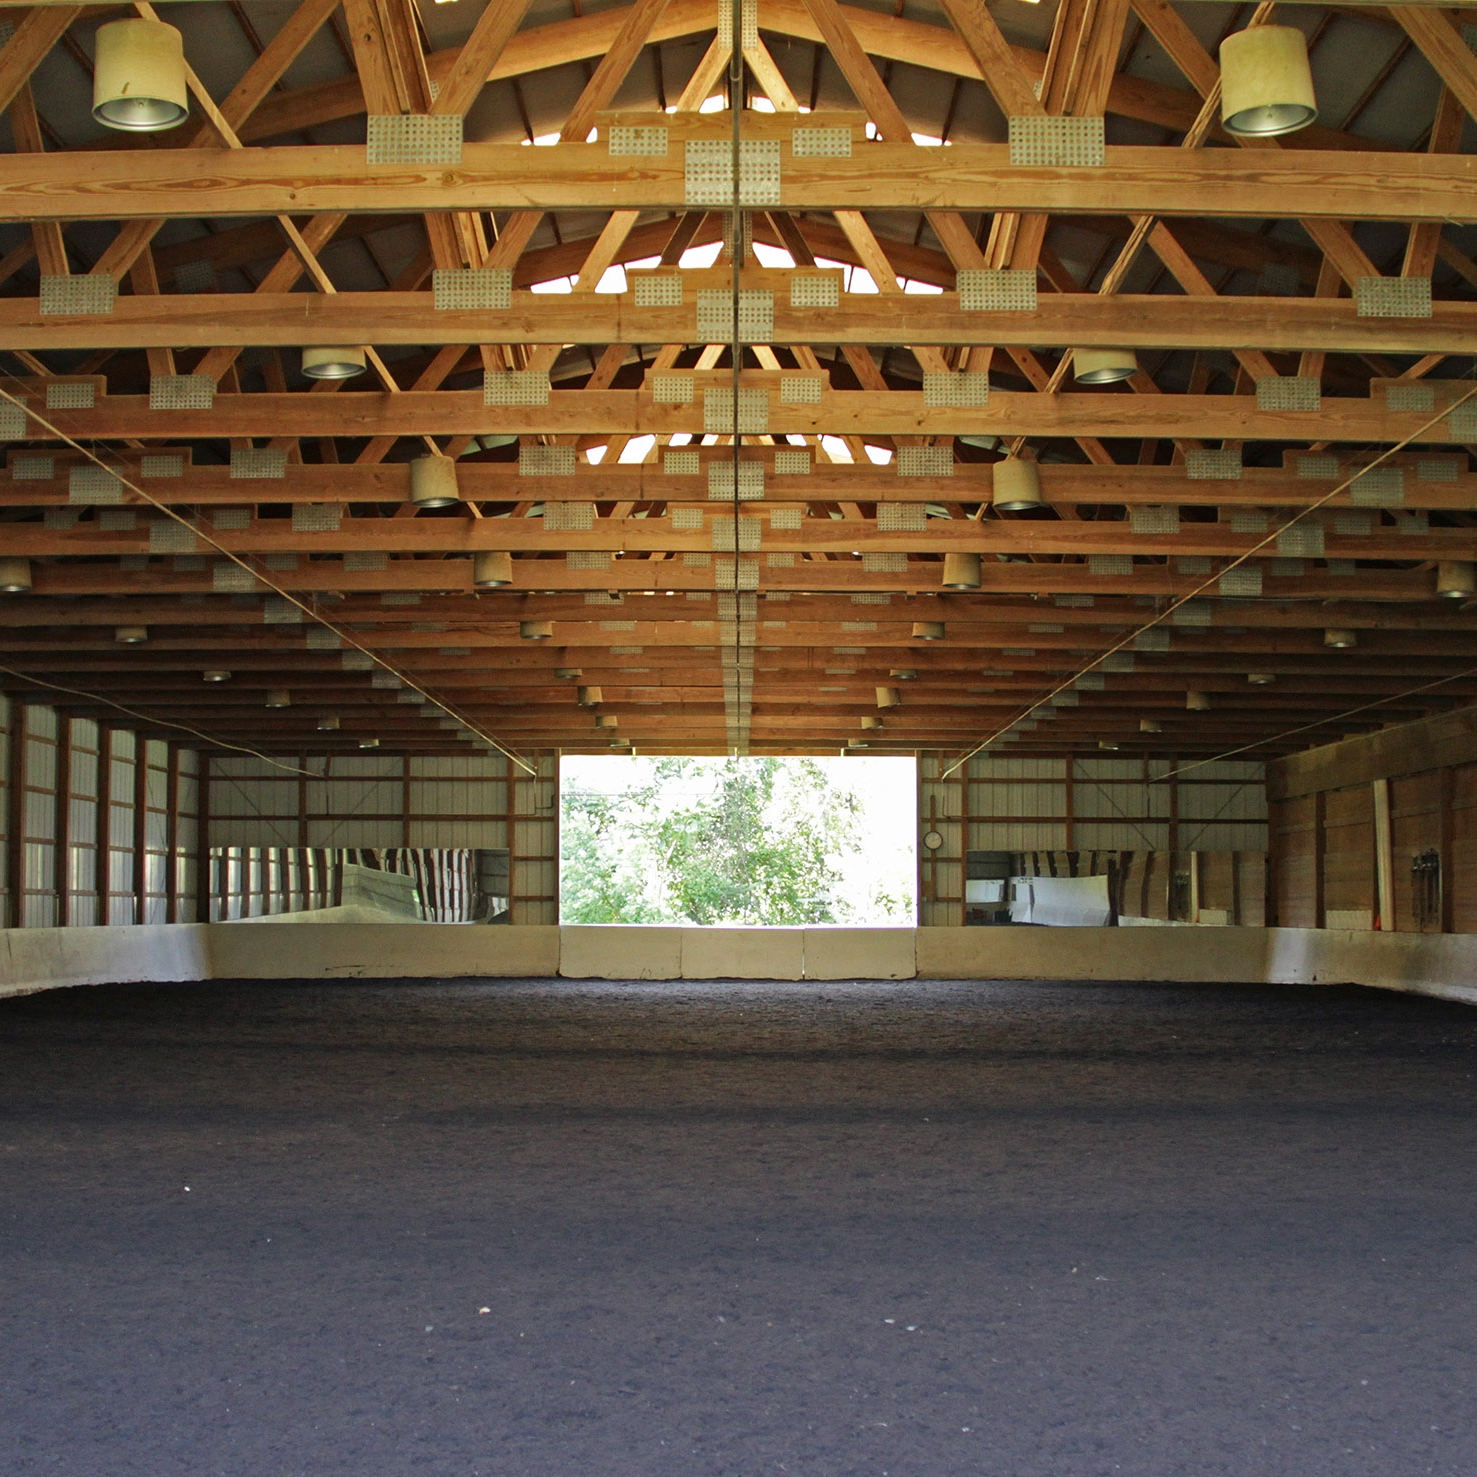 Facilities - A welcoming experience for your equine, indoors and outdoors.